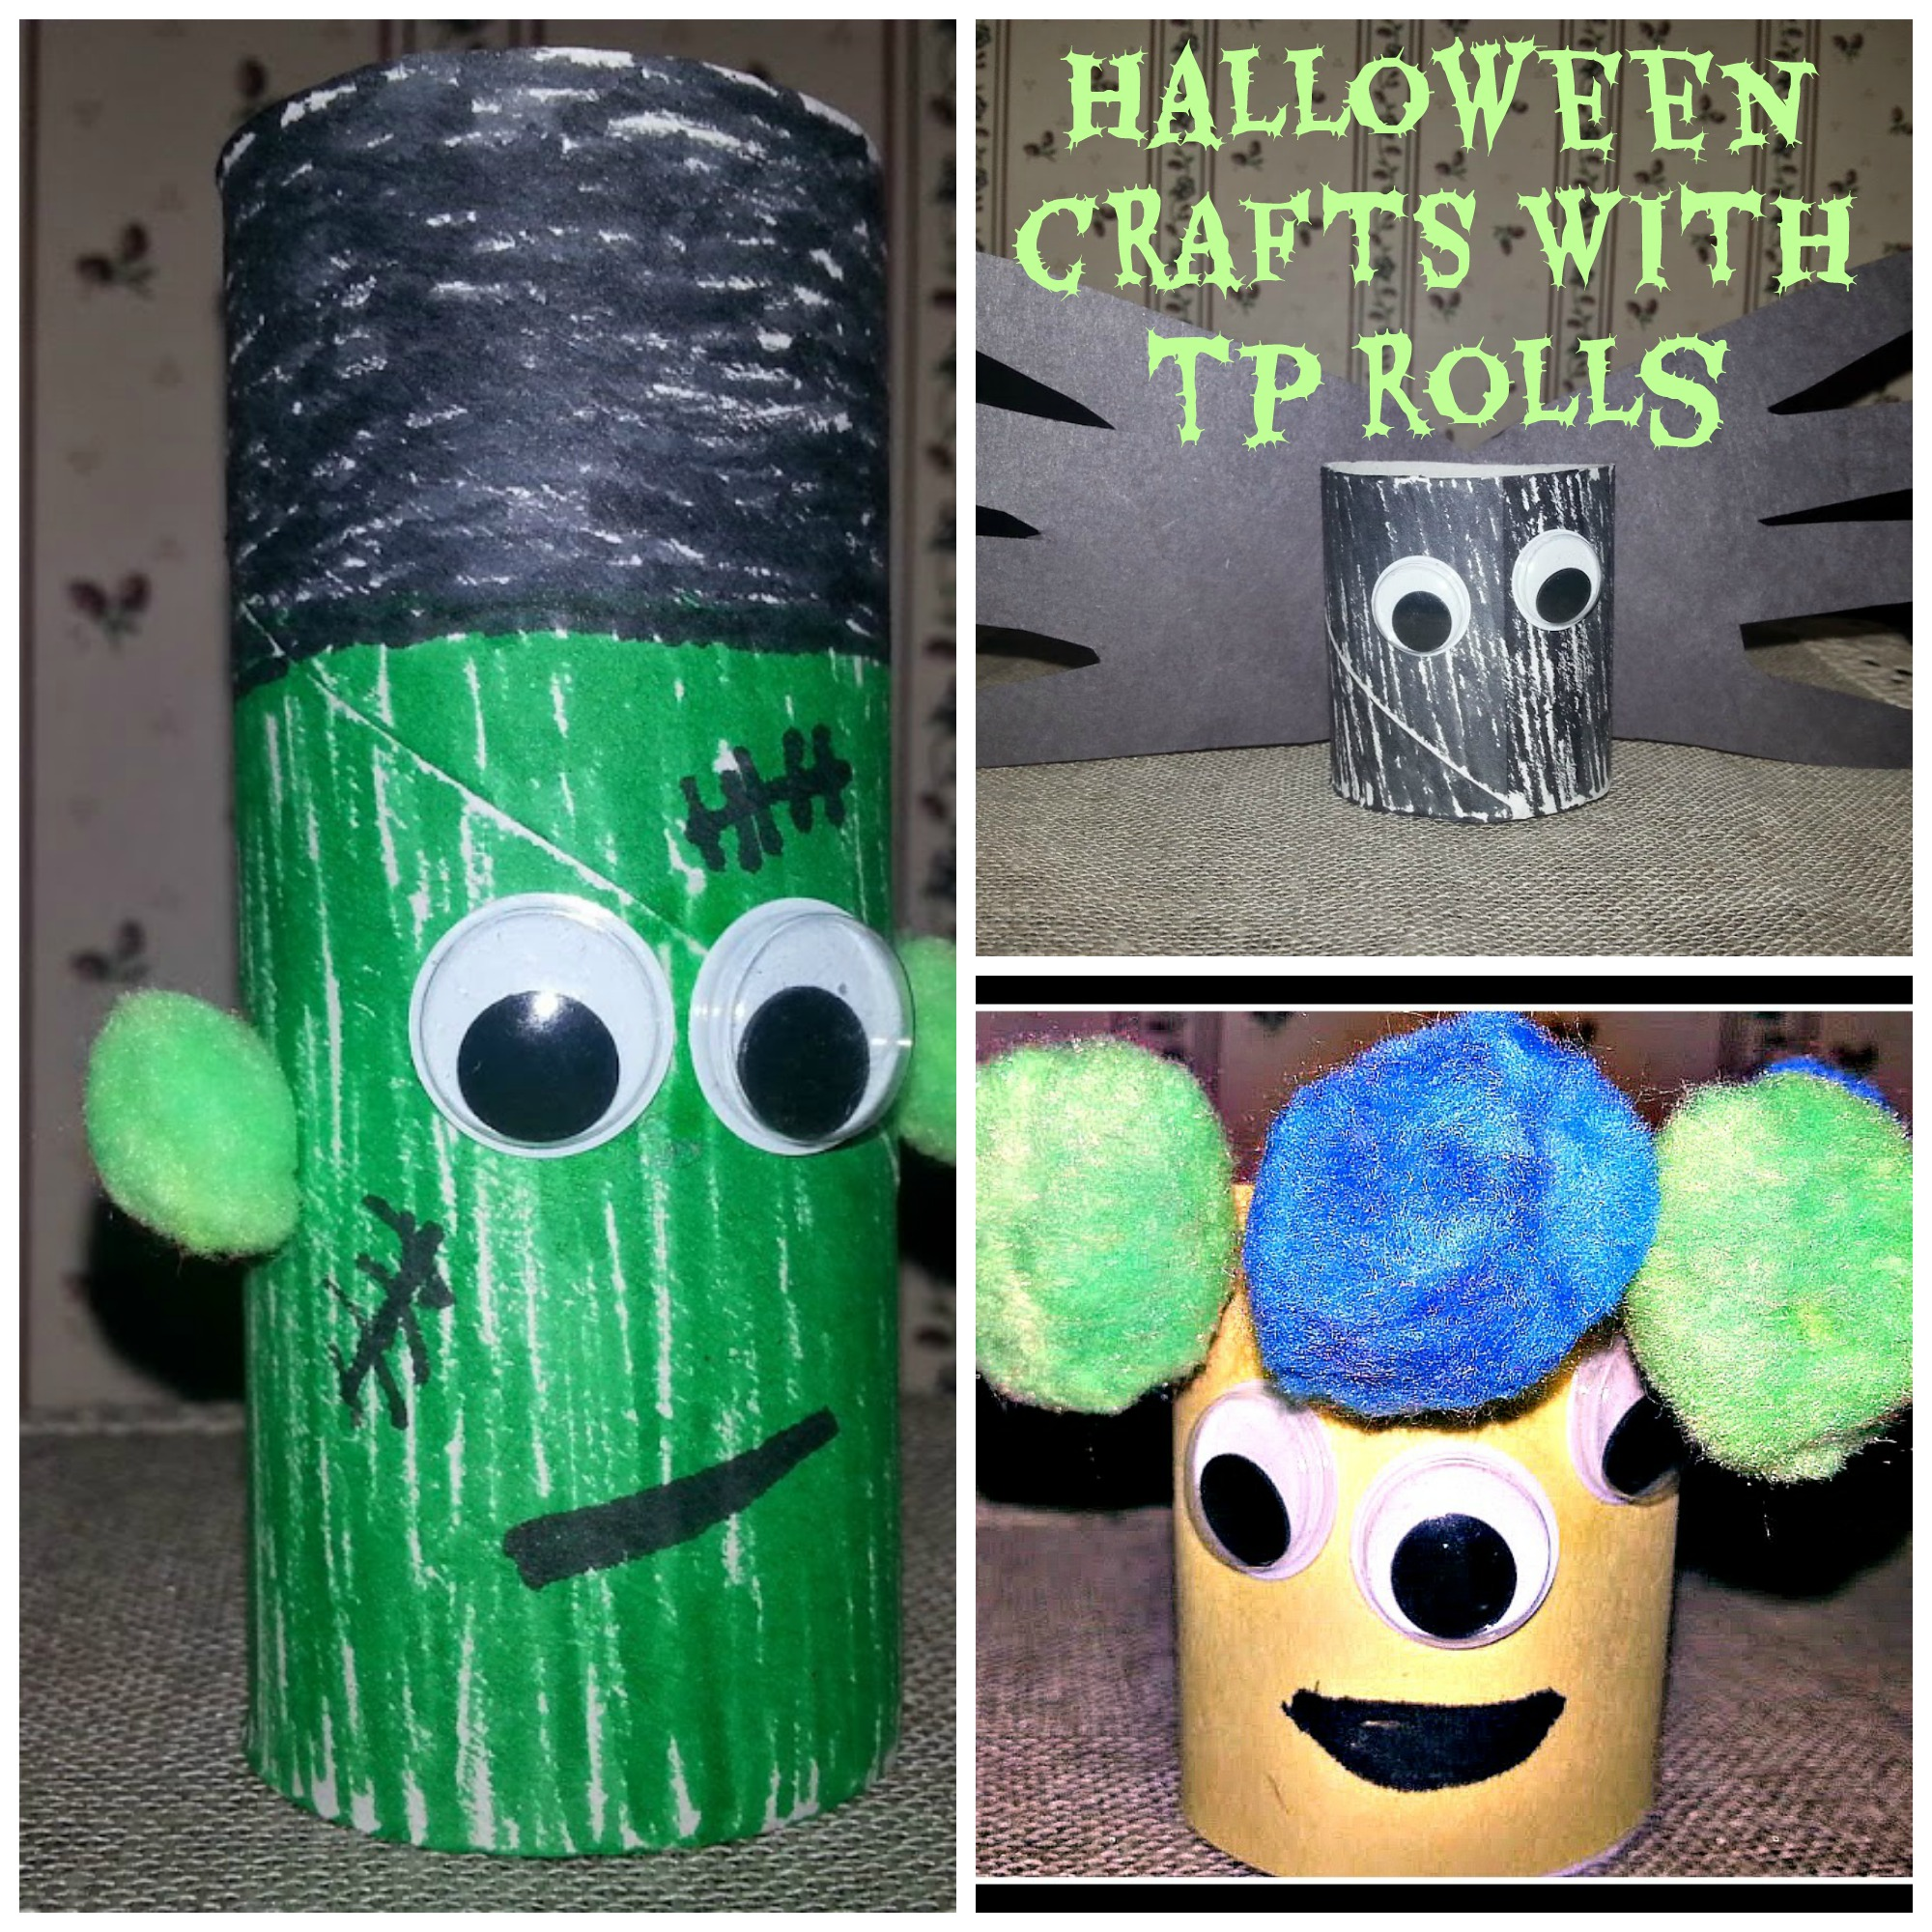 Make Some Scary Crafts This Halloween With Toilet Paper Rolls A Fun Time